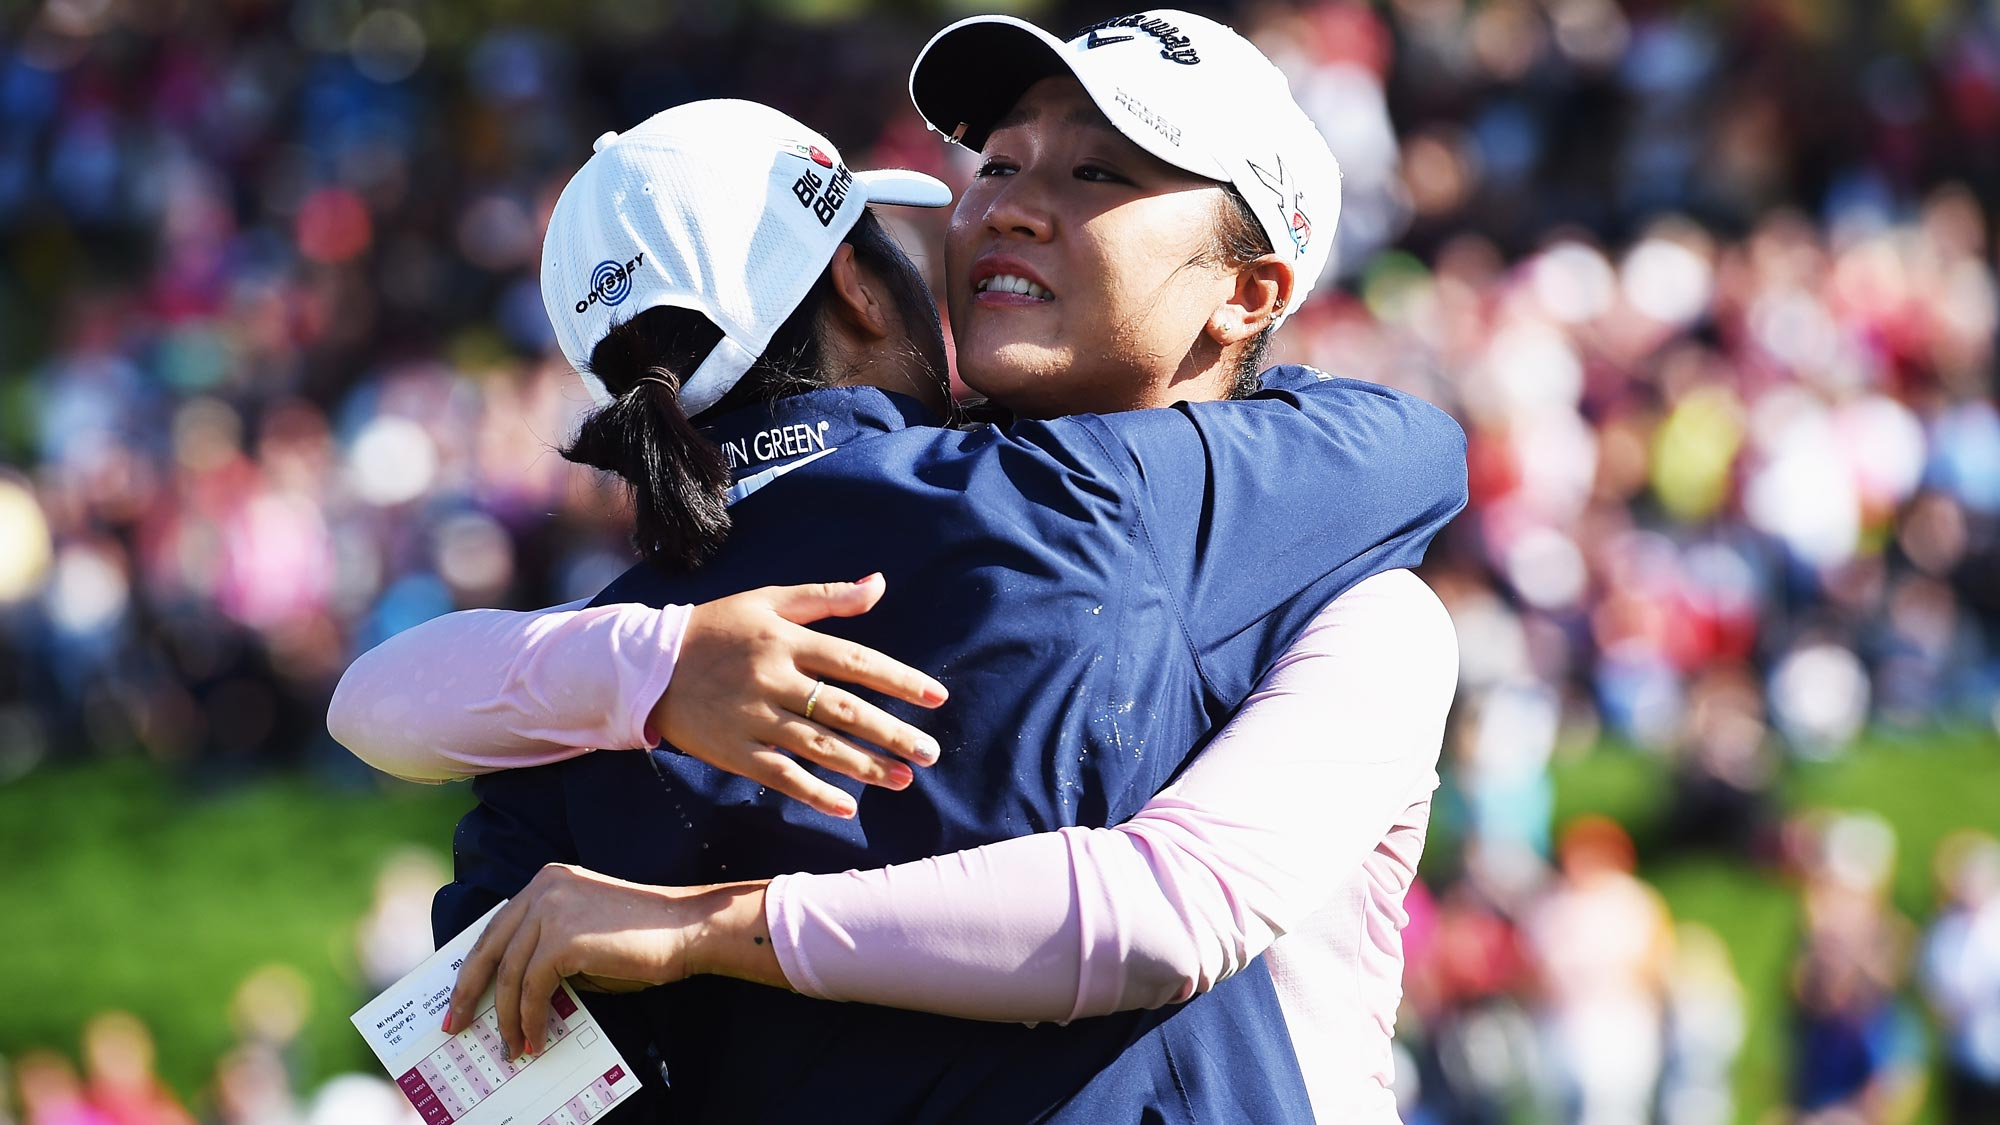 Lydia Ko of New Zealand celebrates winning on the 18th hole during the final round of the Evian Championship